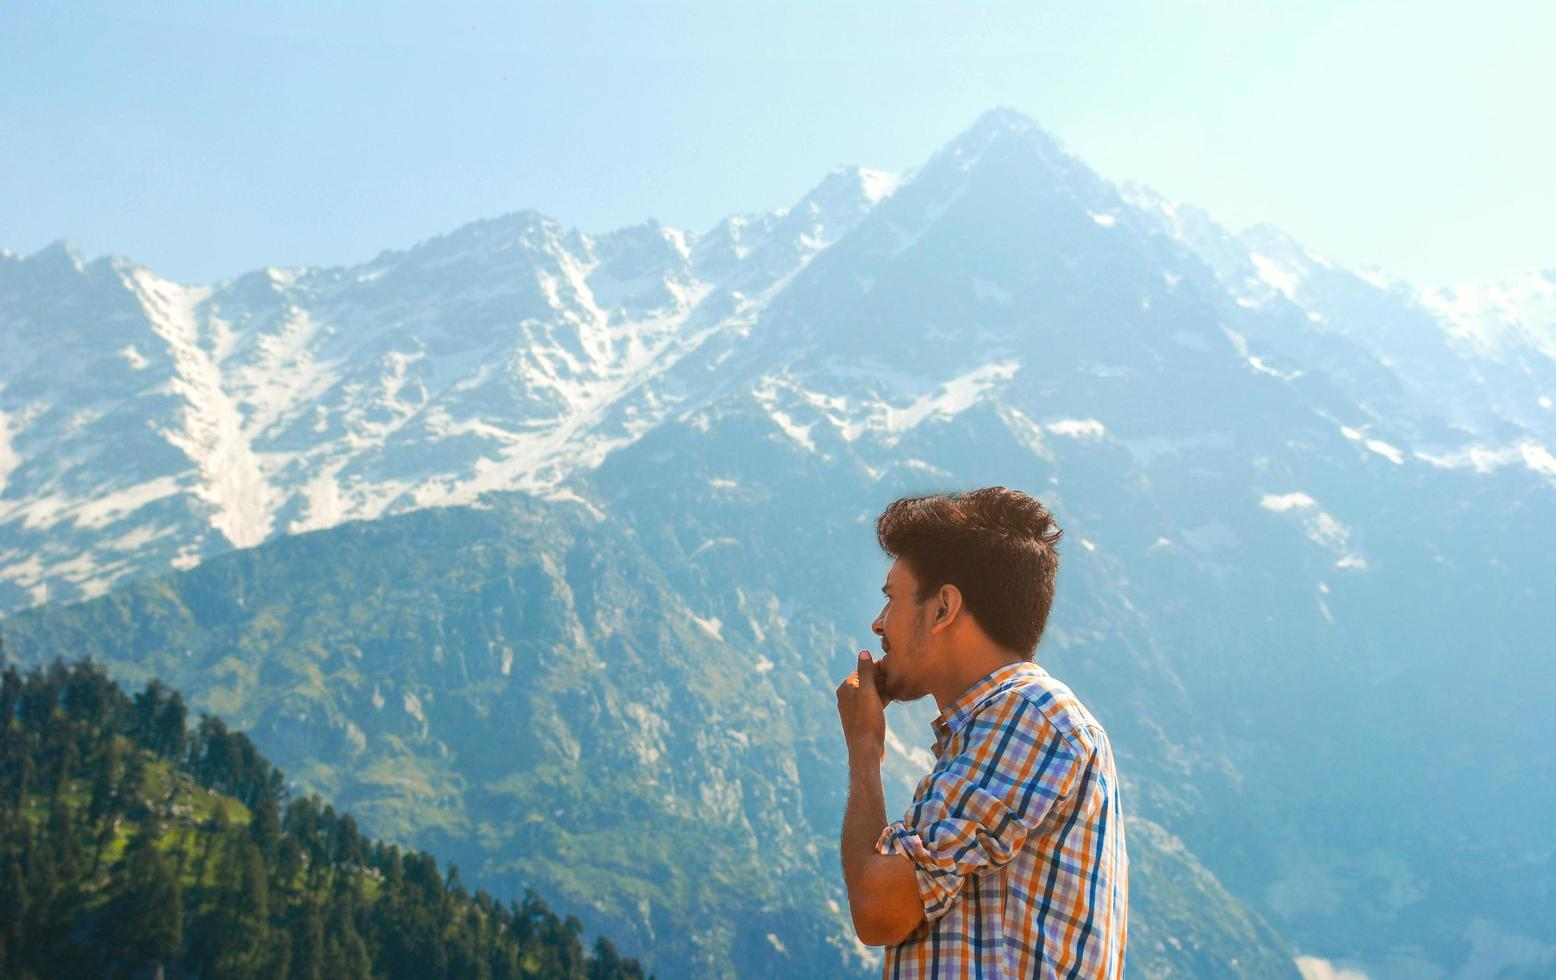 Man in plaid looking at mountains and trees photo